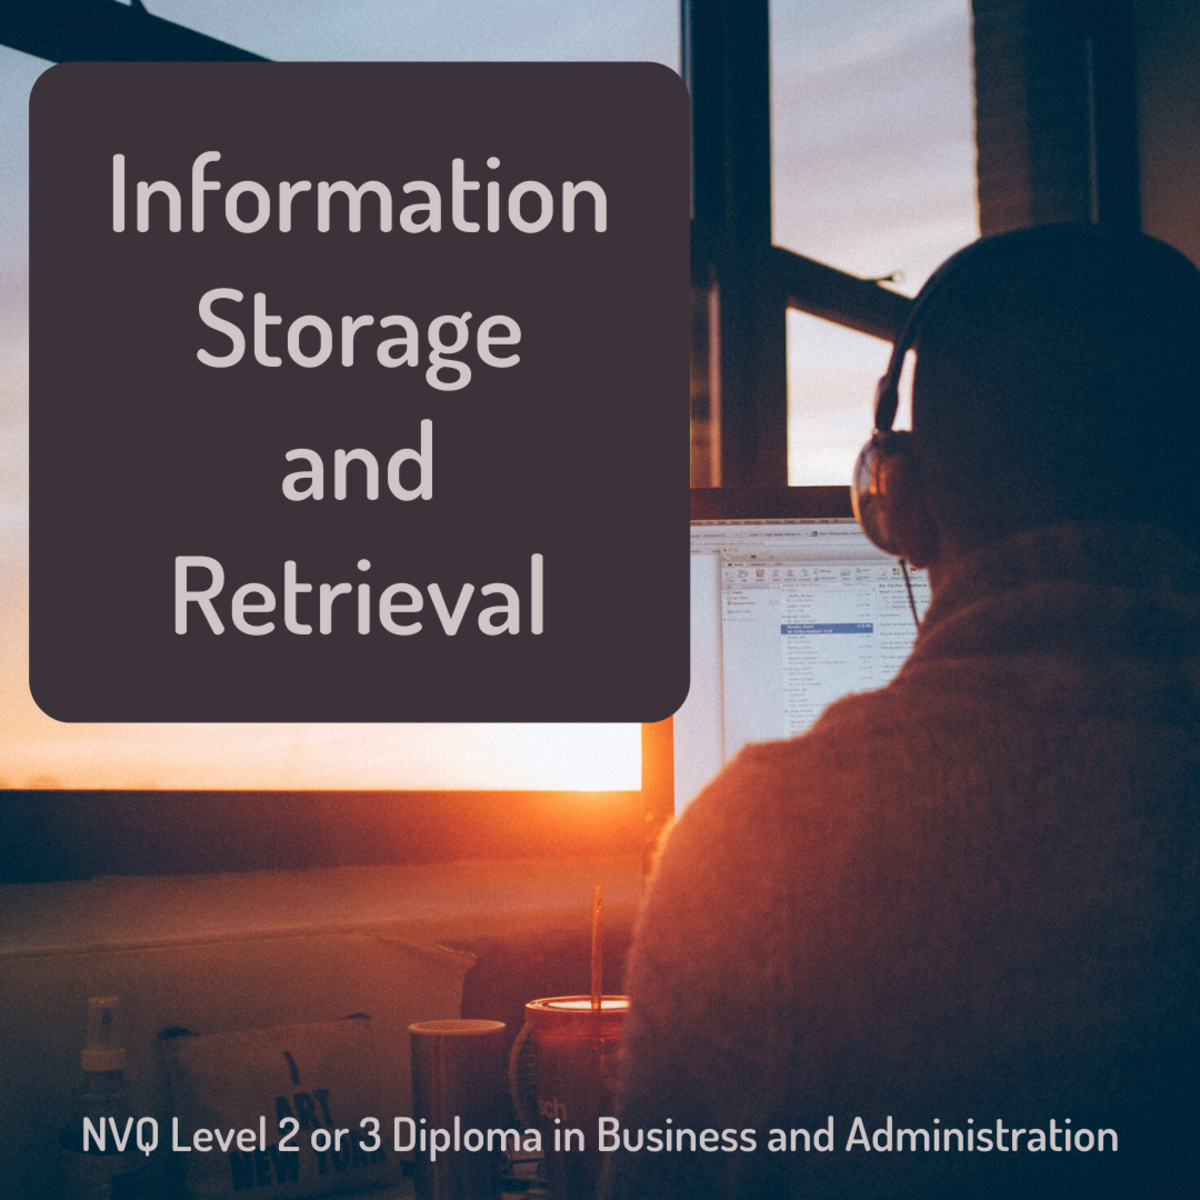 Learn about the purpose and procedures related to information storage and retrieval in business administration.